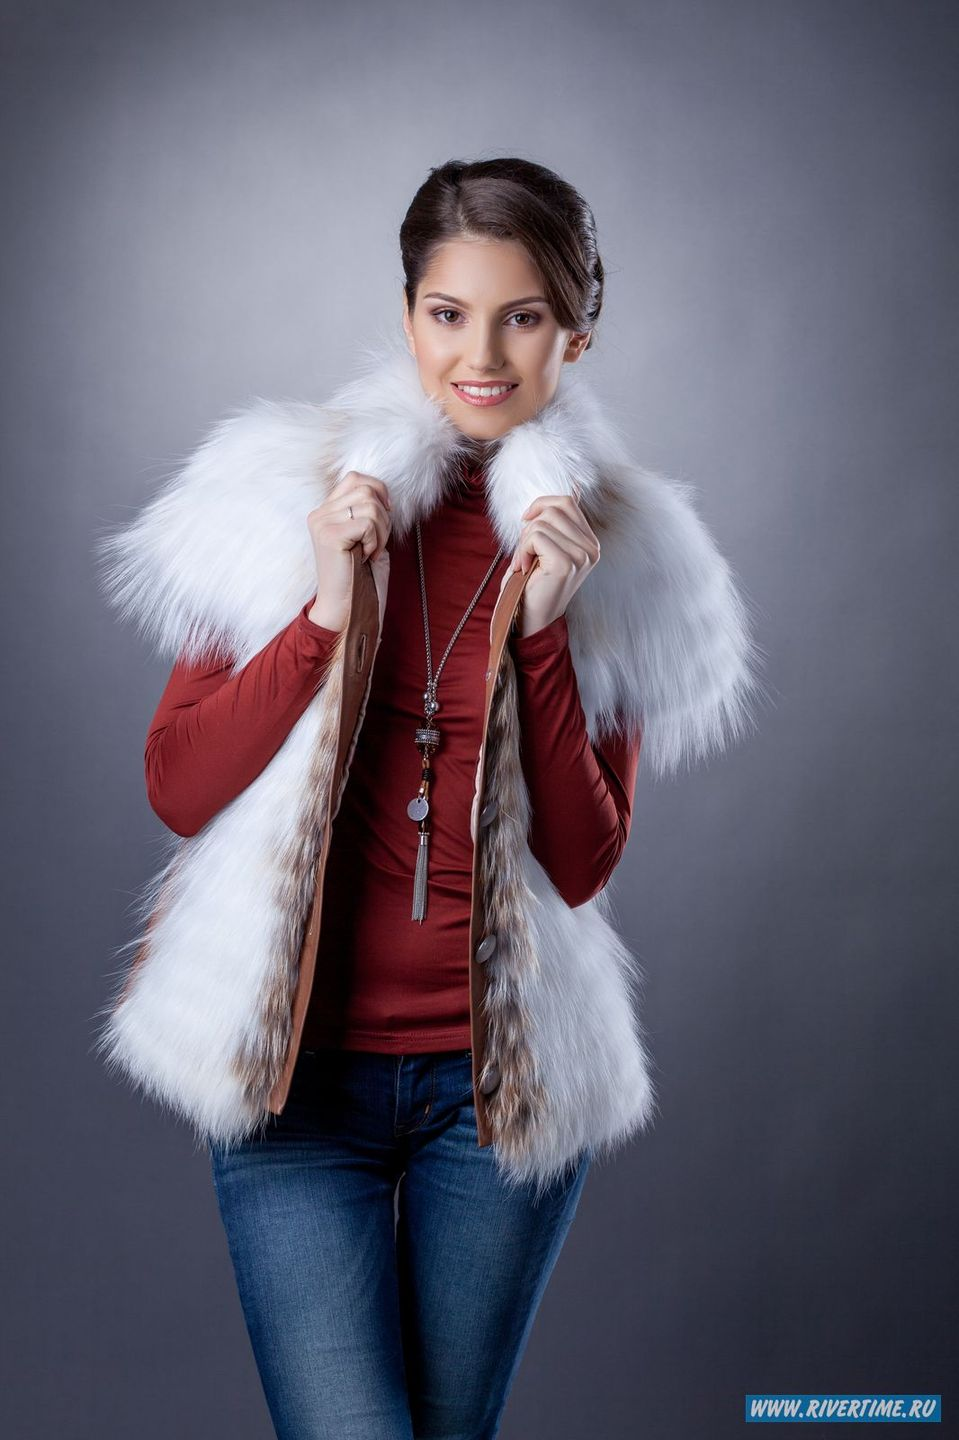 Nicely dressed cute girl | winter coat, cute girl, photoshoot, smile, perfect teeth